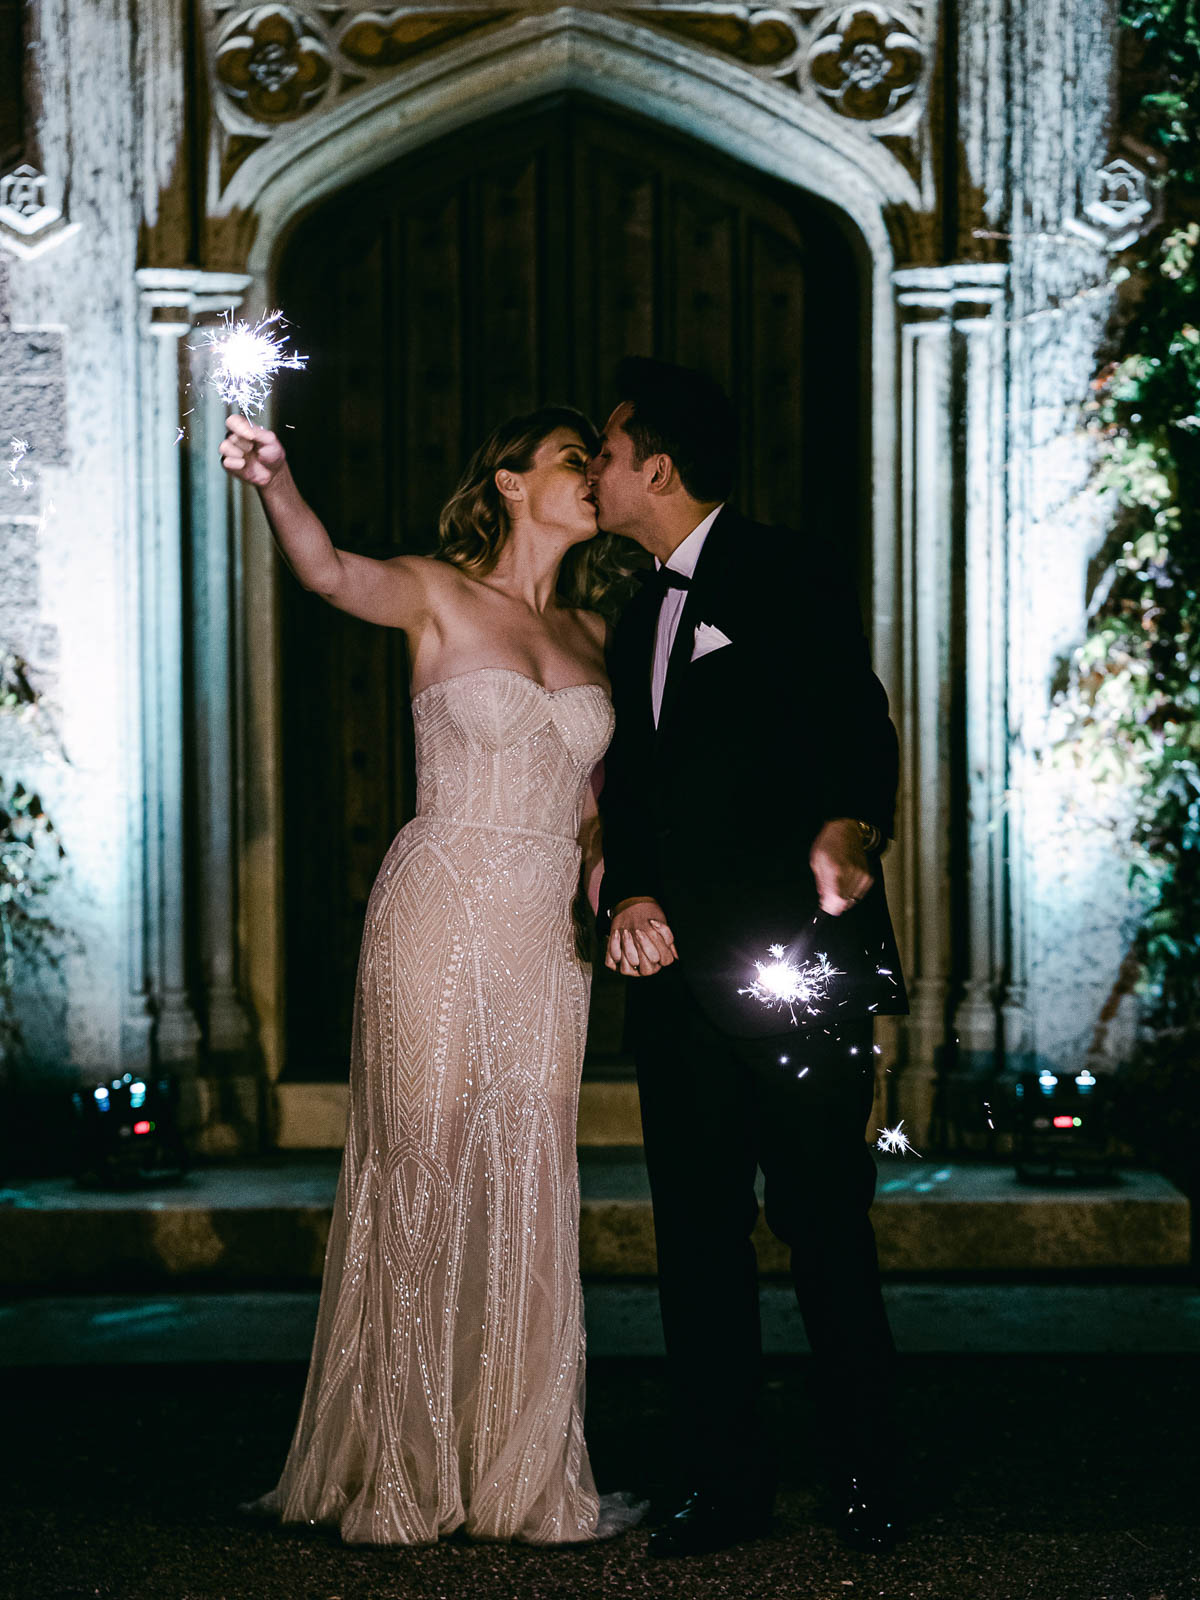 Why You Should Consider Turning Your Wedding Day Into A Wedding Weekend